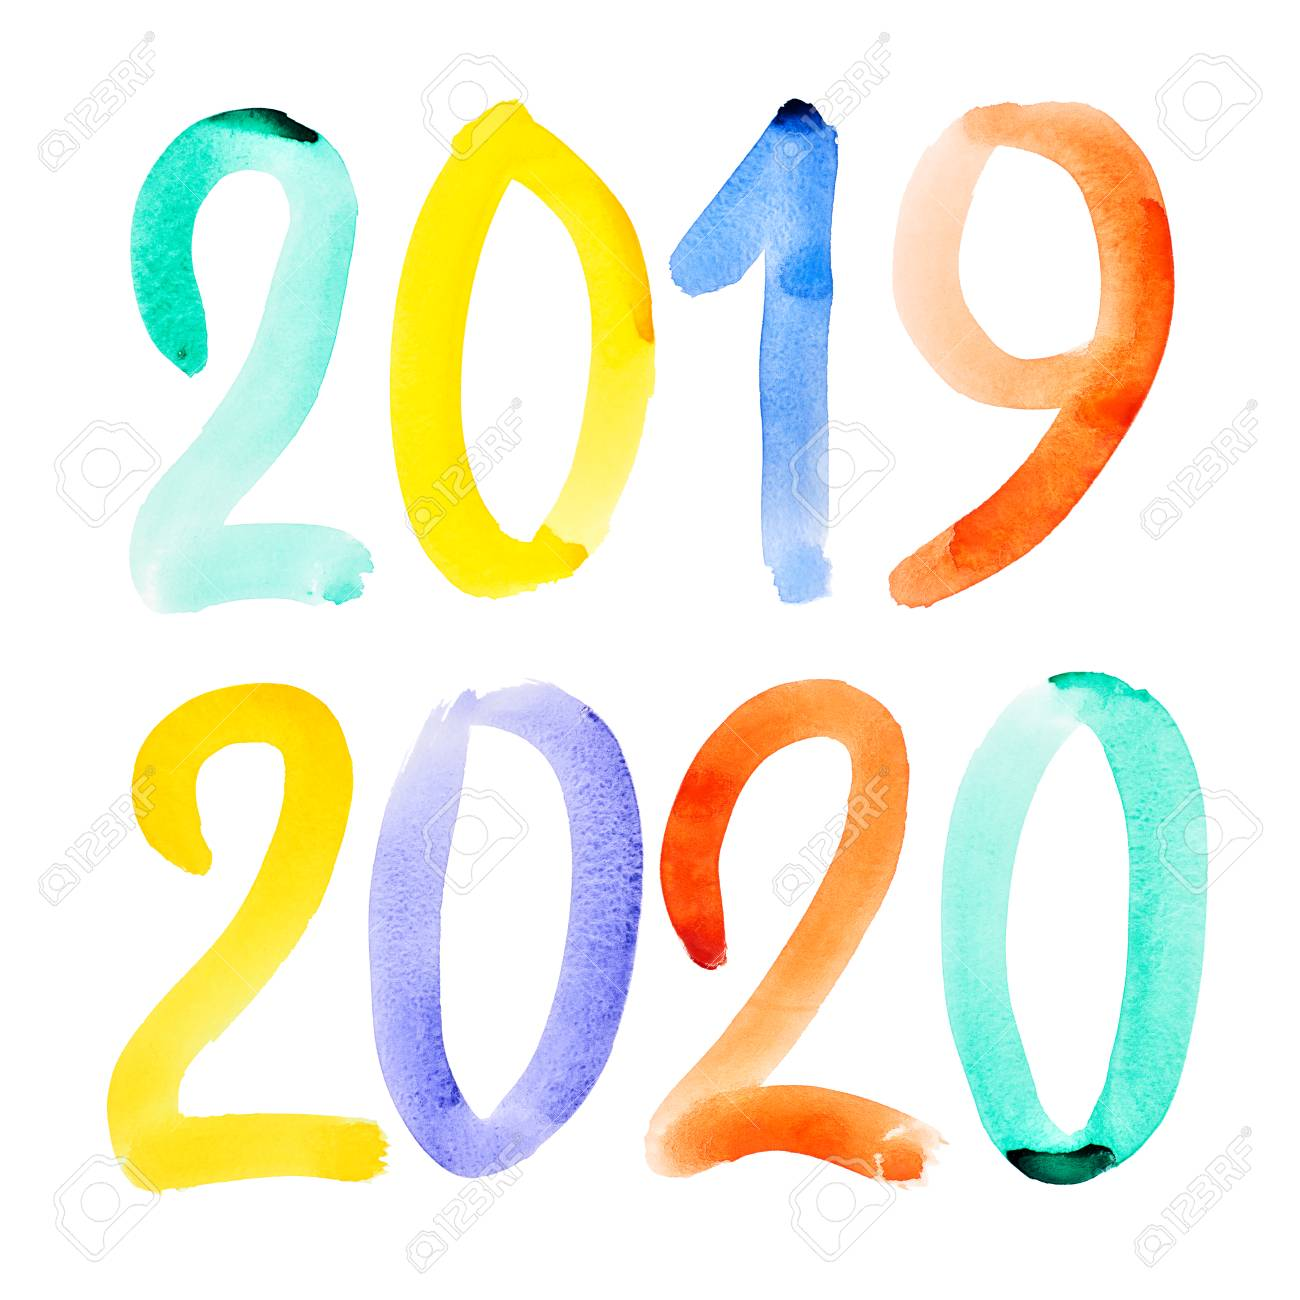 Image result for 2019 / 2020